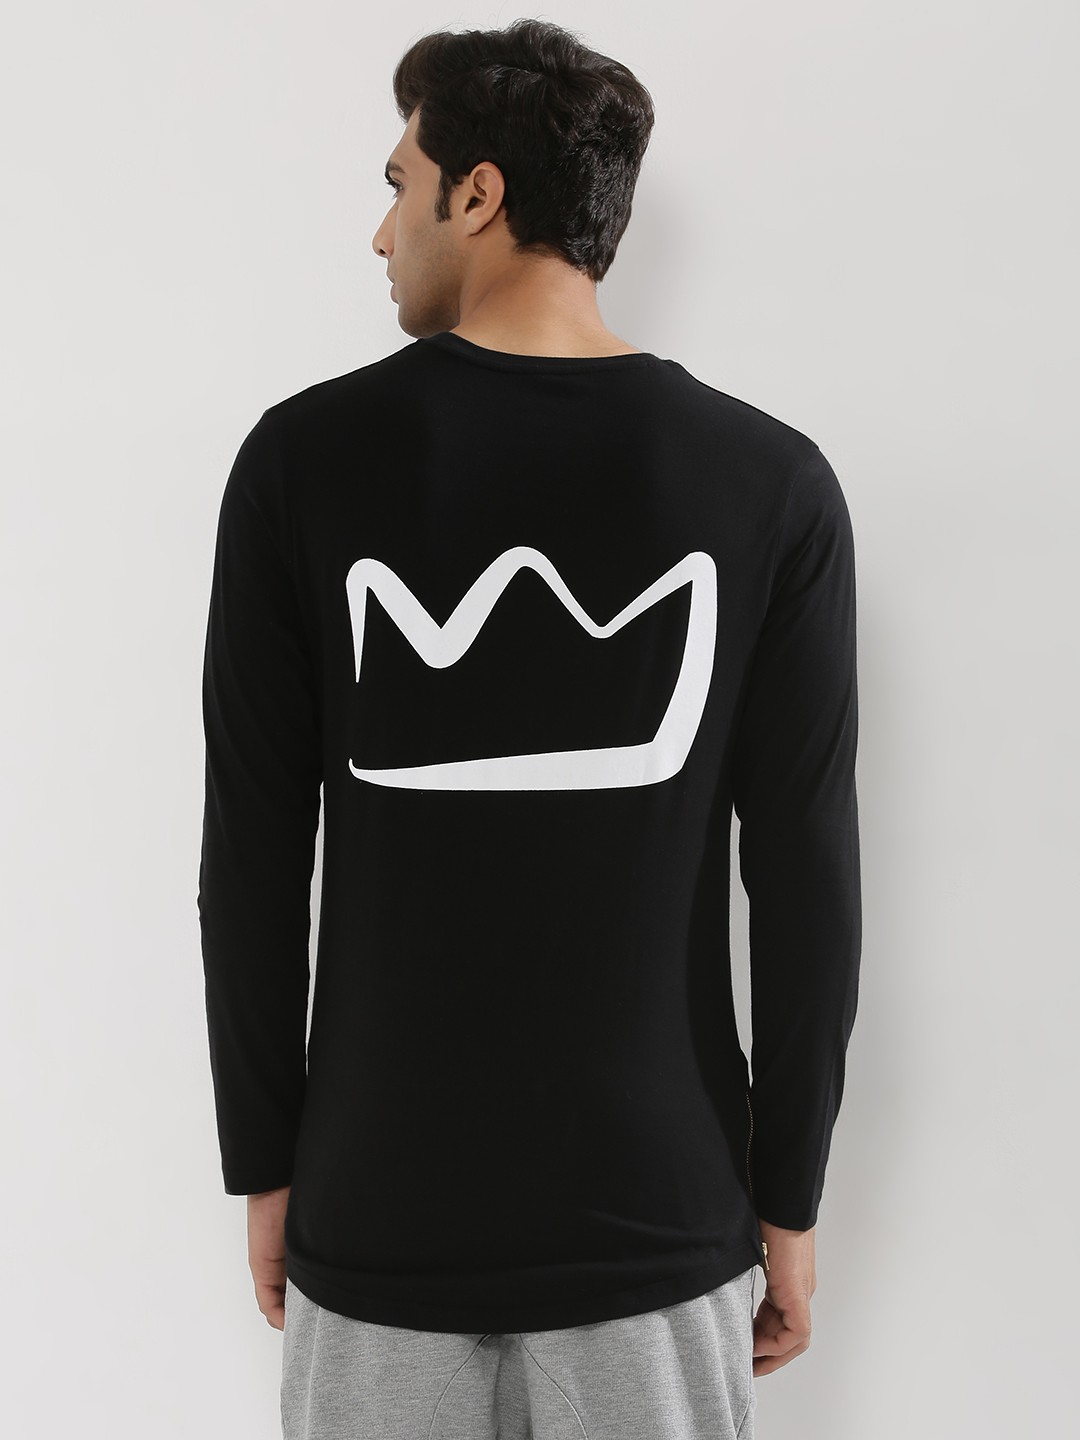 Black t shirt with print - Kindred Back Print T Shirt With Side Zip